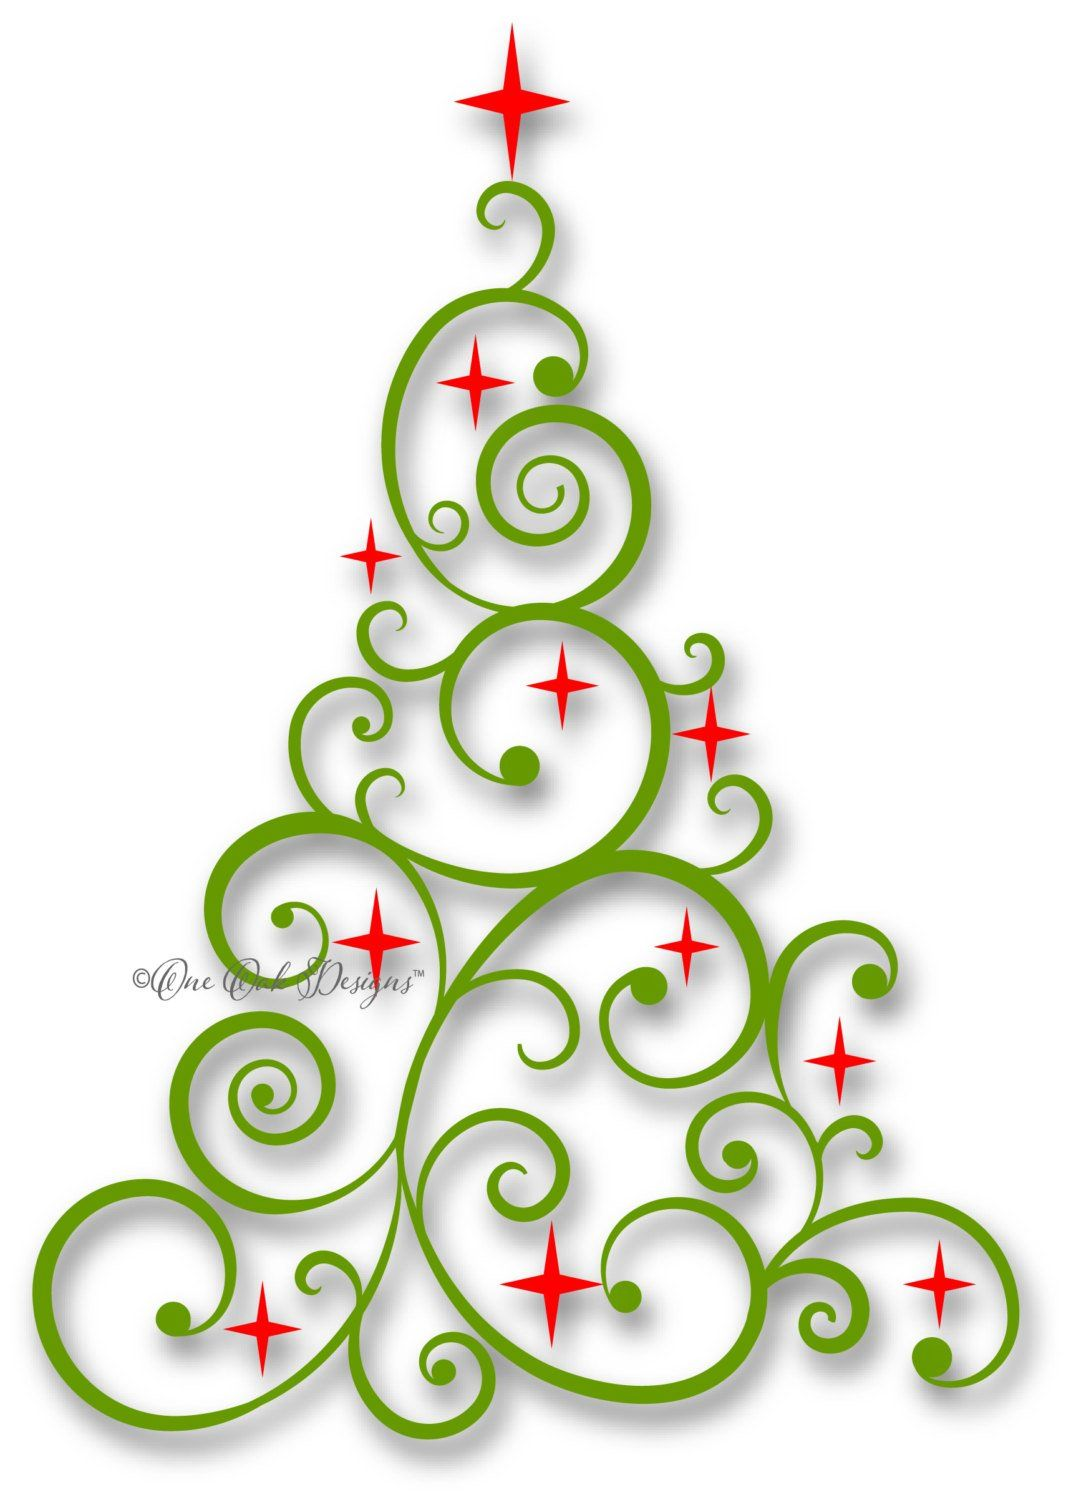 Christmas Tree Svg Free Download.Image Result For Christmas Free Download Cricut Files